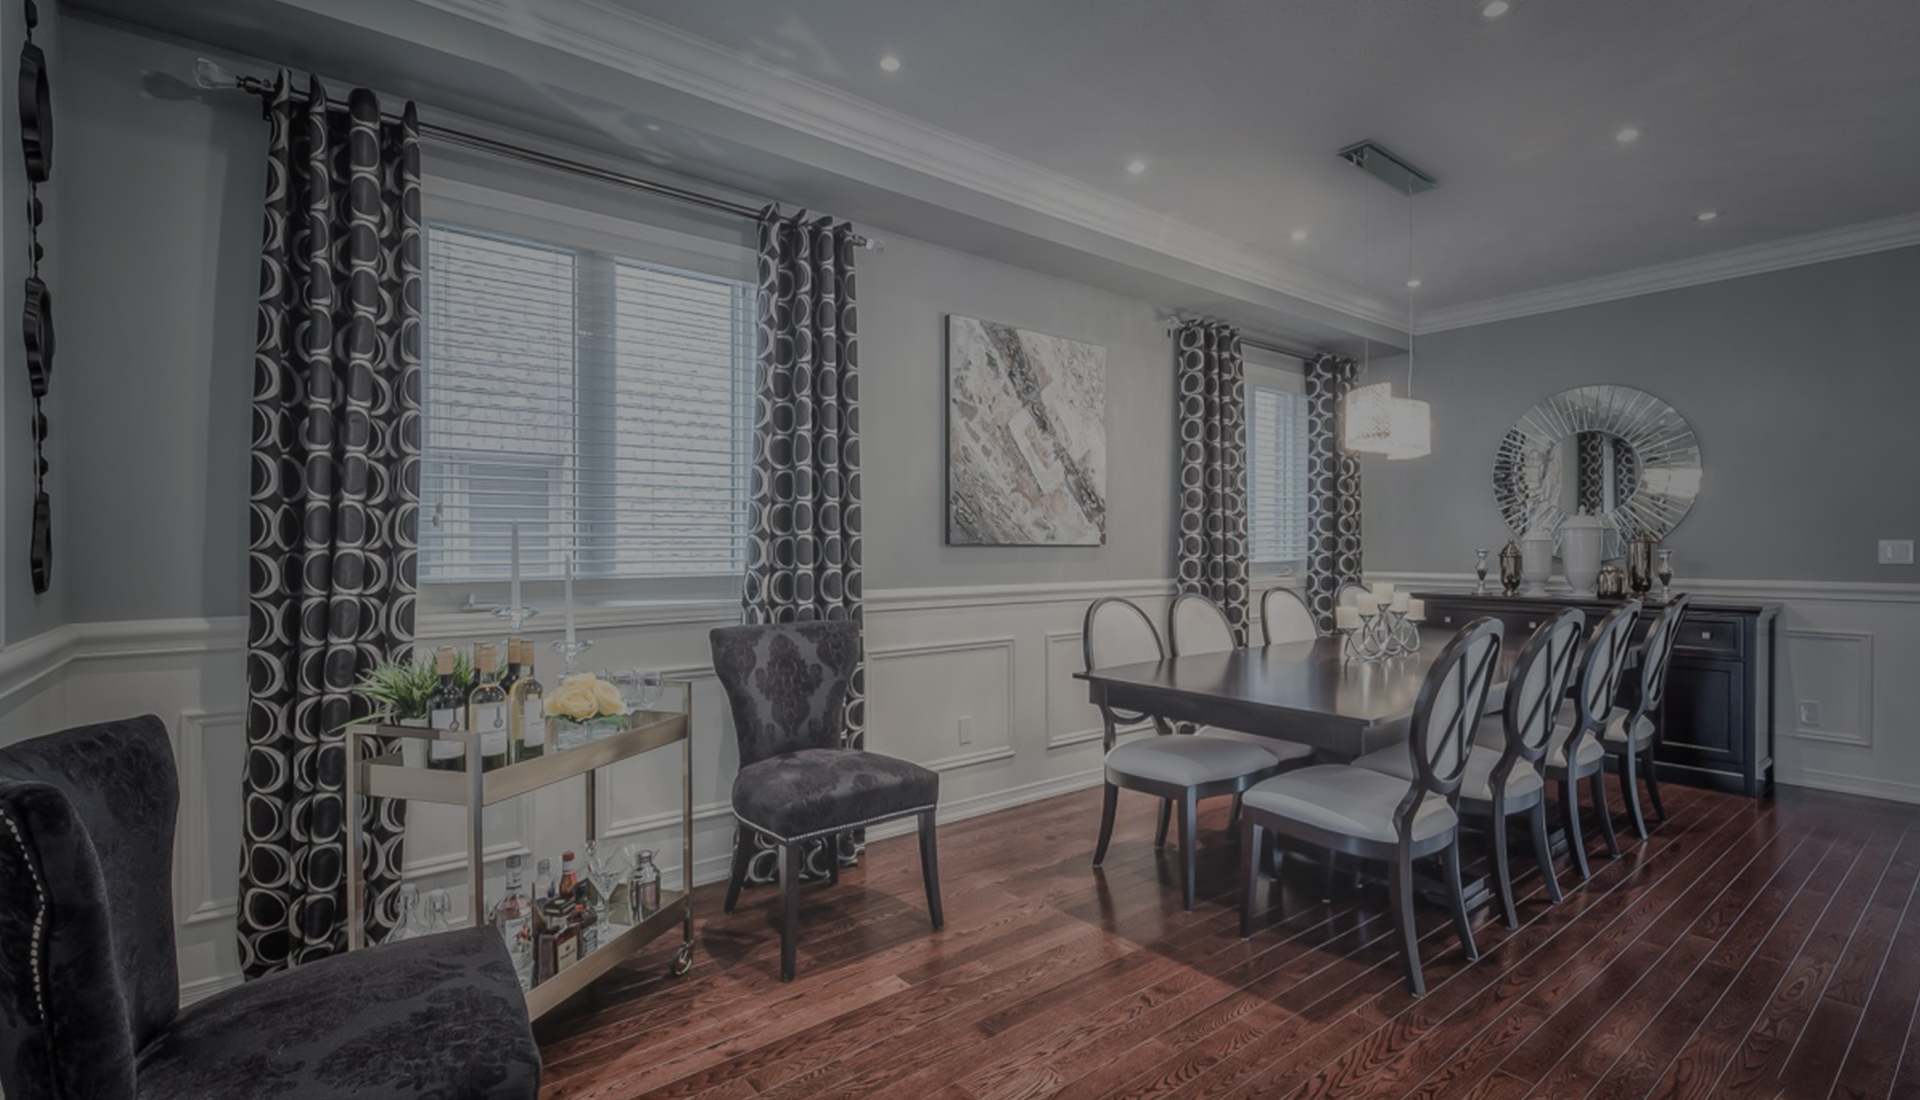 Show Off Home Design Inc   Just another WordPress site